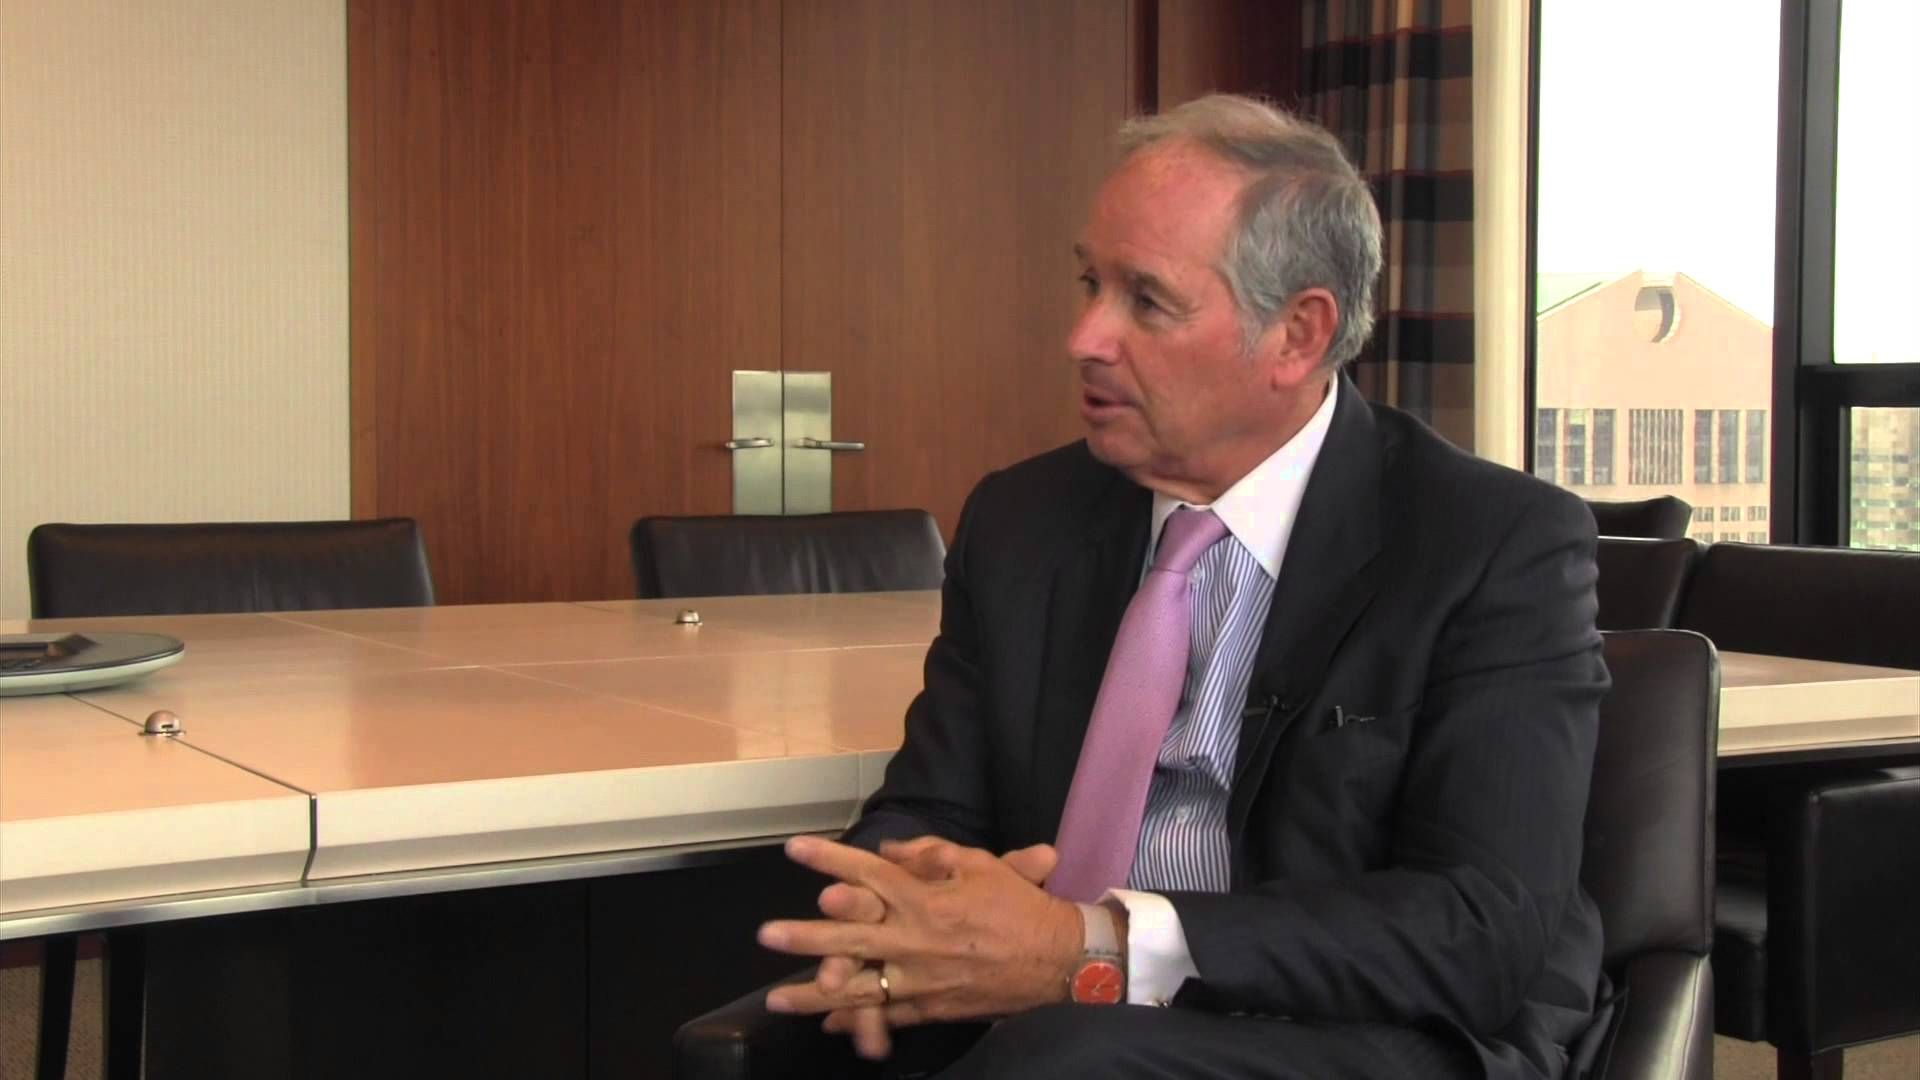 Stephen Schwarzman. Photo: YouTube